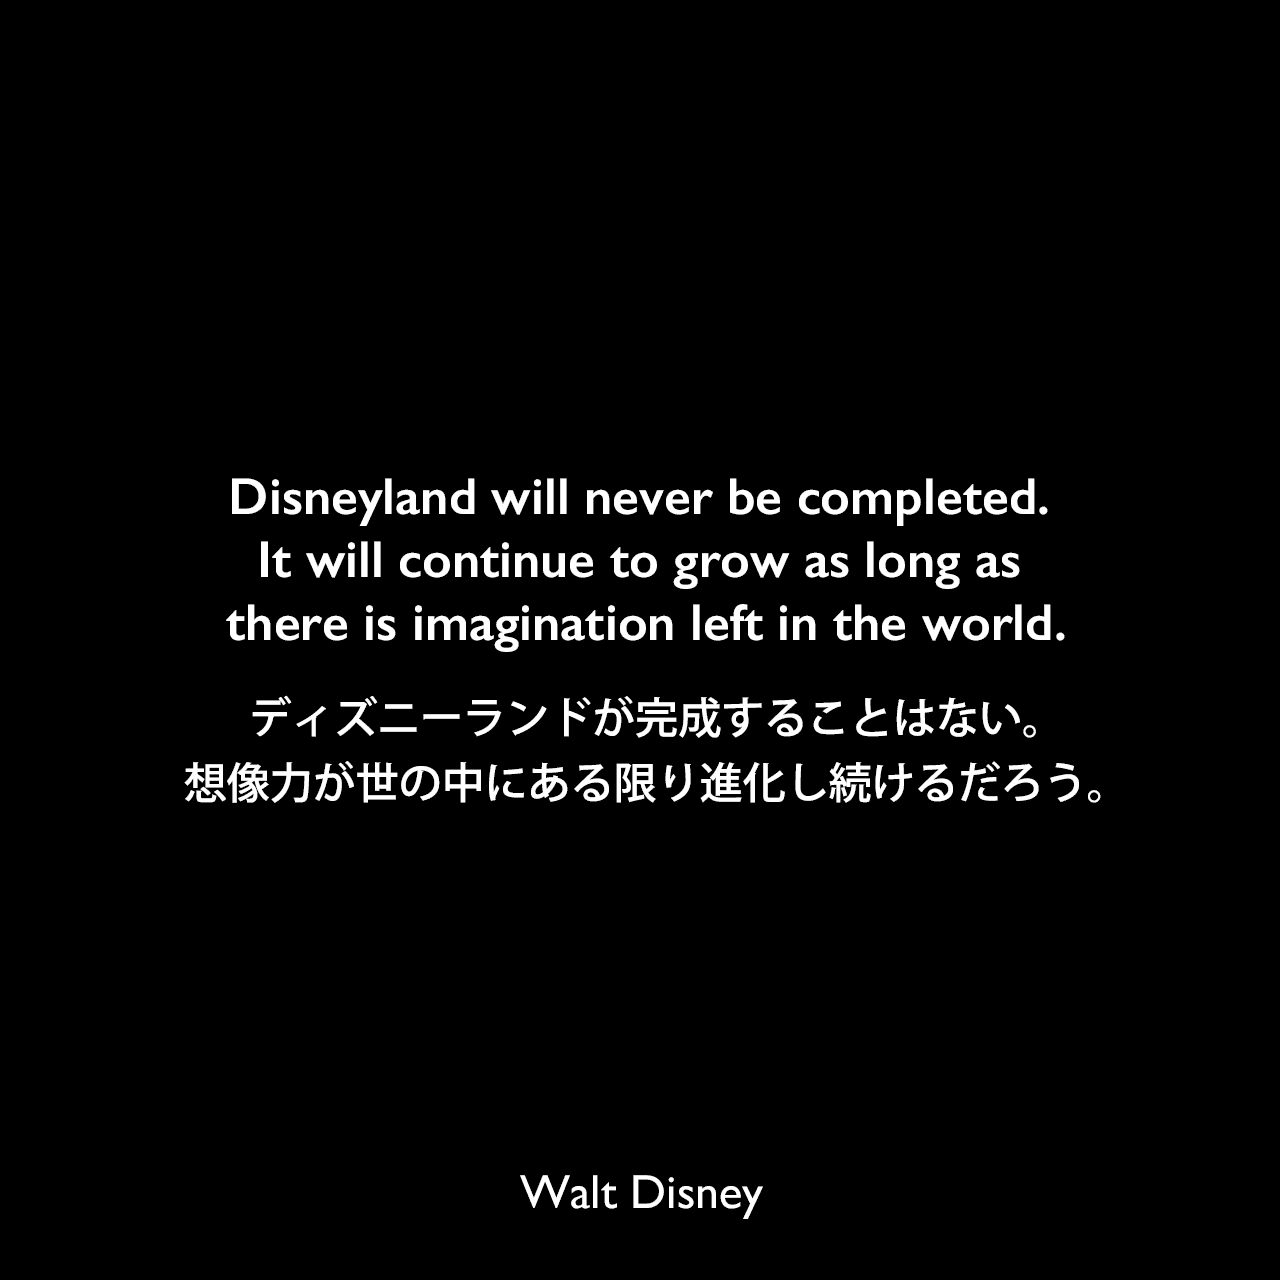 Disneyland will never be completed. It will continue to grow as long as there is imagination left in the world.ディズニーランドが完成することはない。想像力が世の中にある限り進化し続けるだろう。Walt Disney